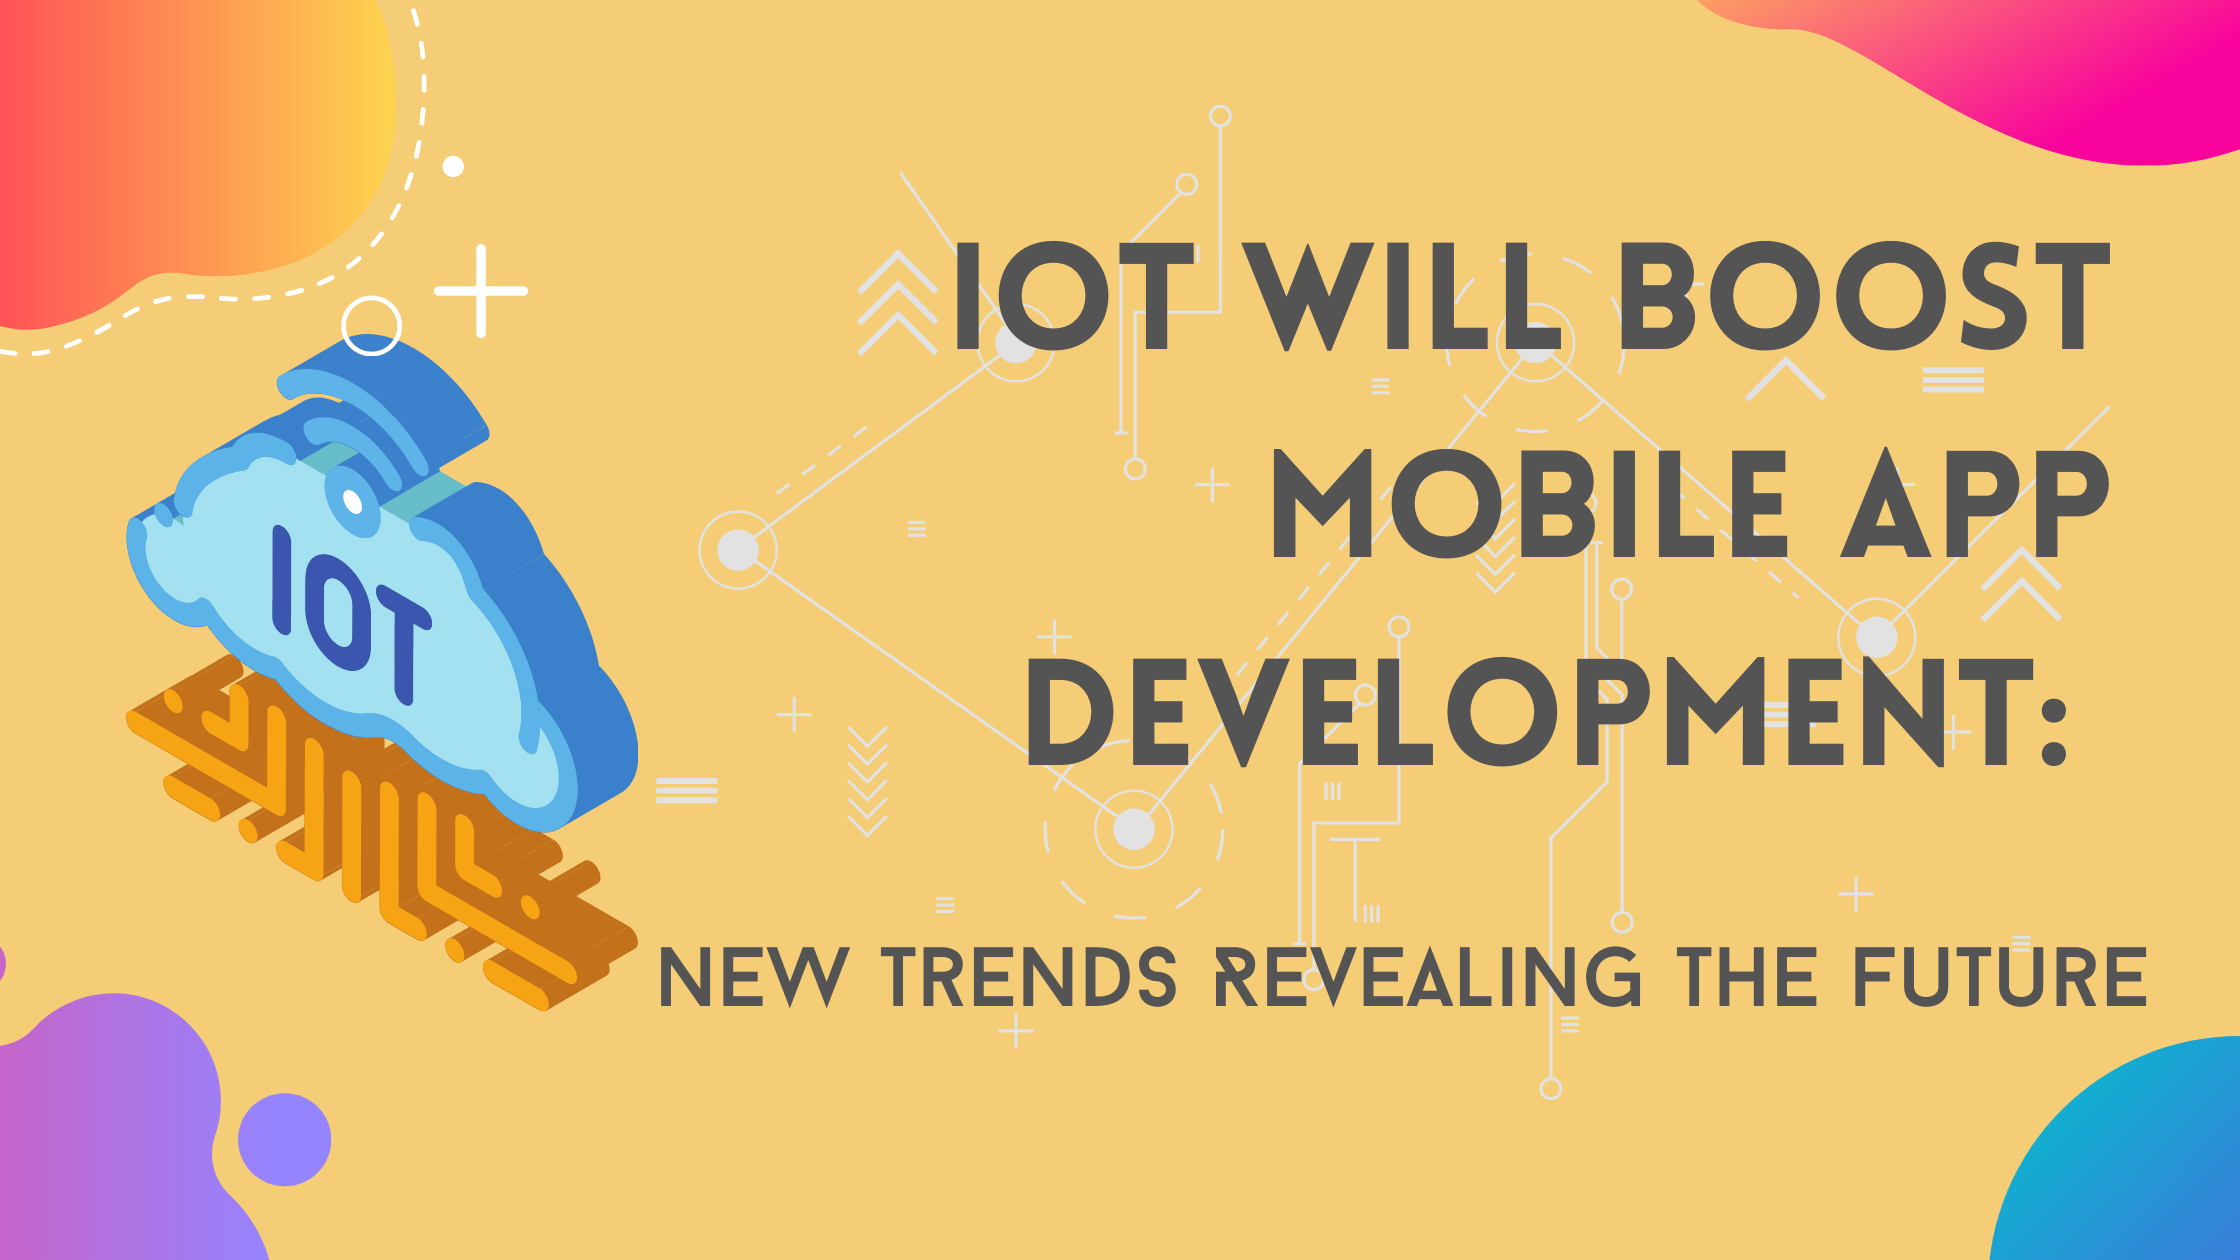 IoT will Boost Mobile App Development: New Trends Revealing the Future